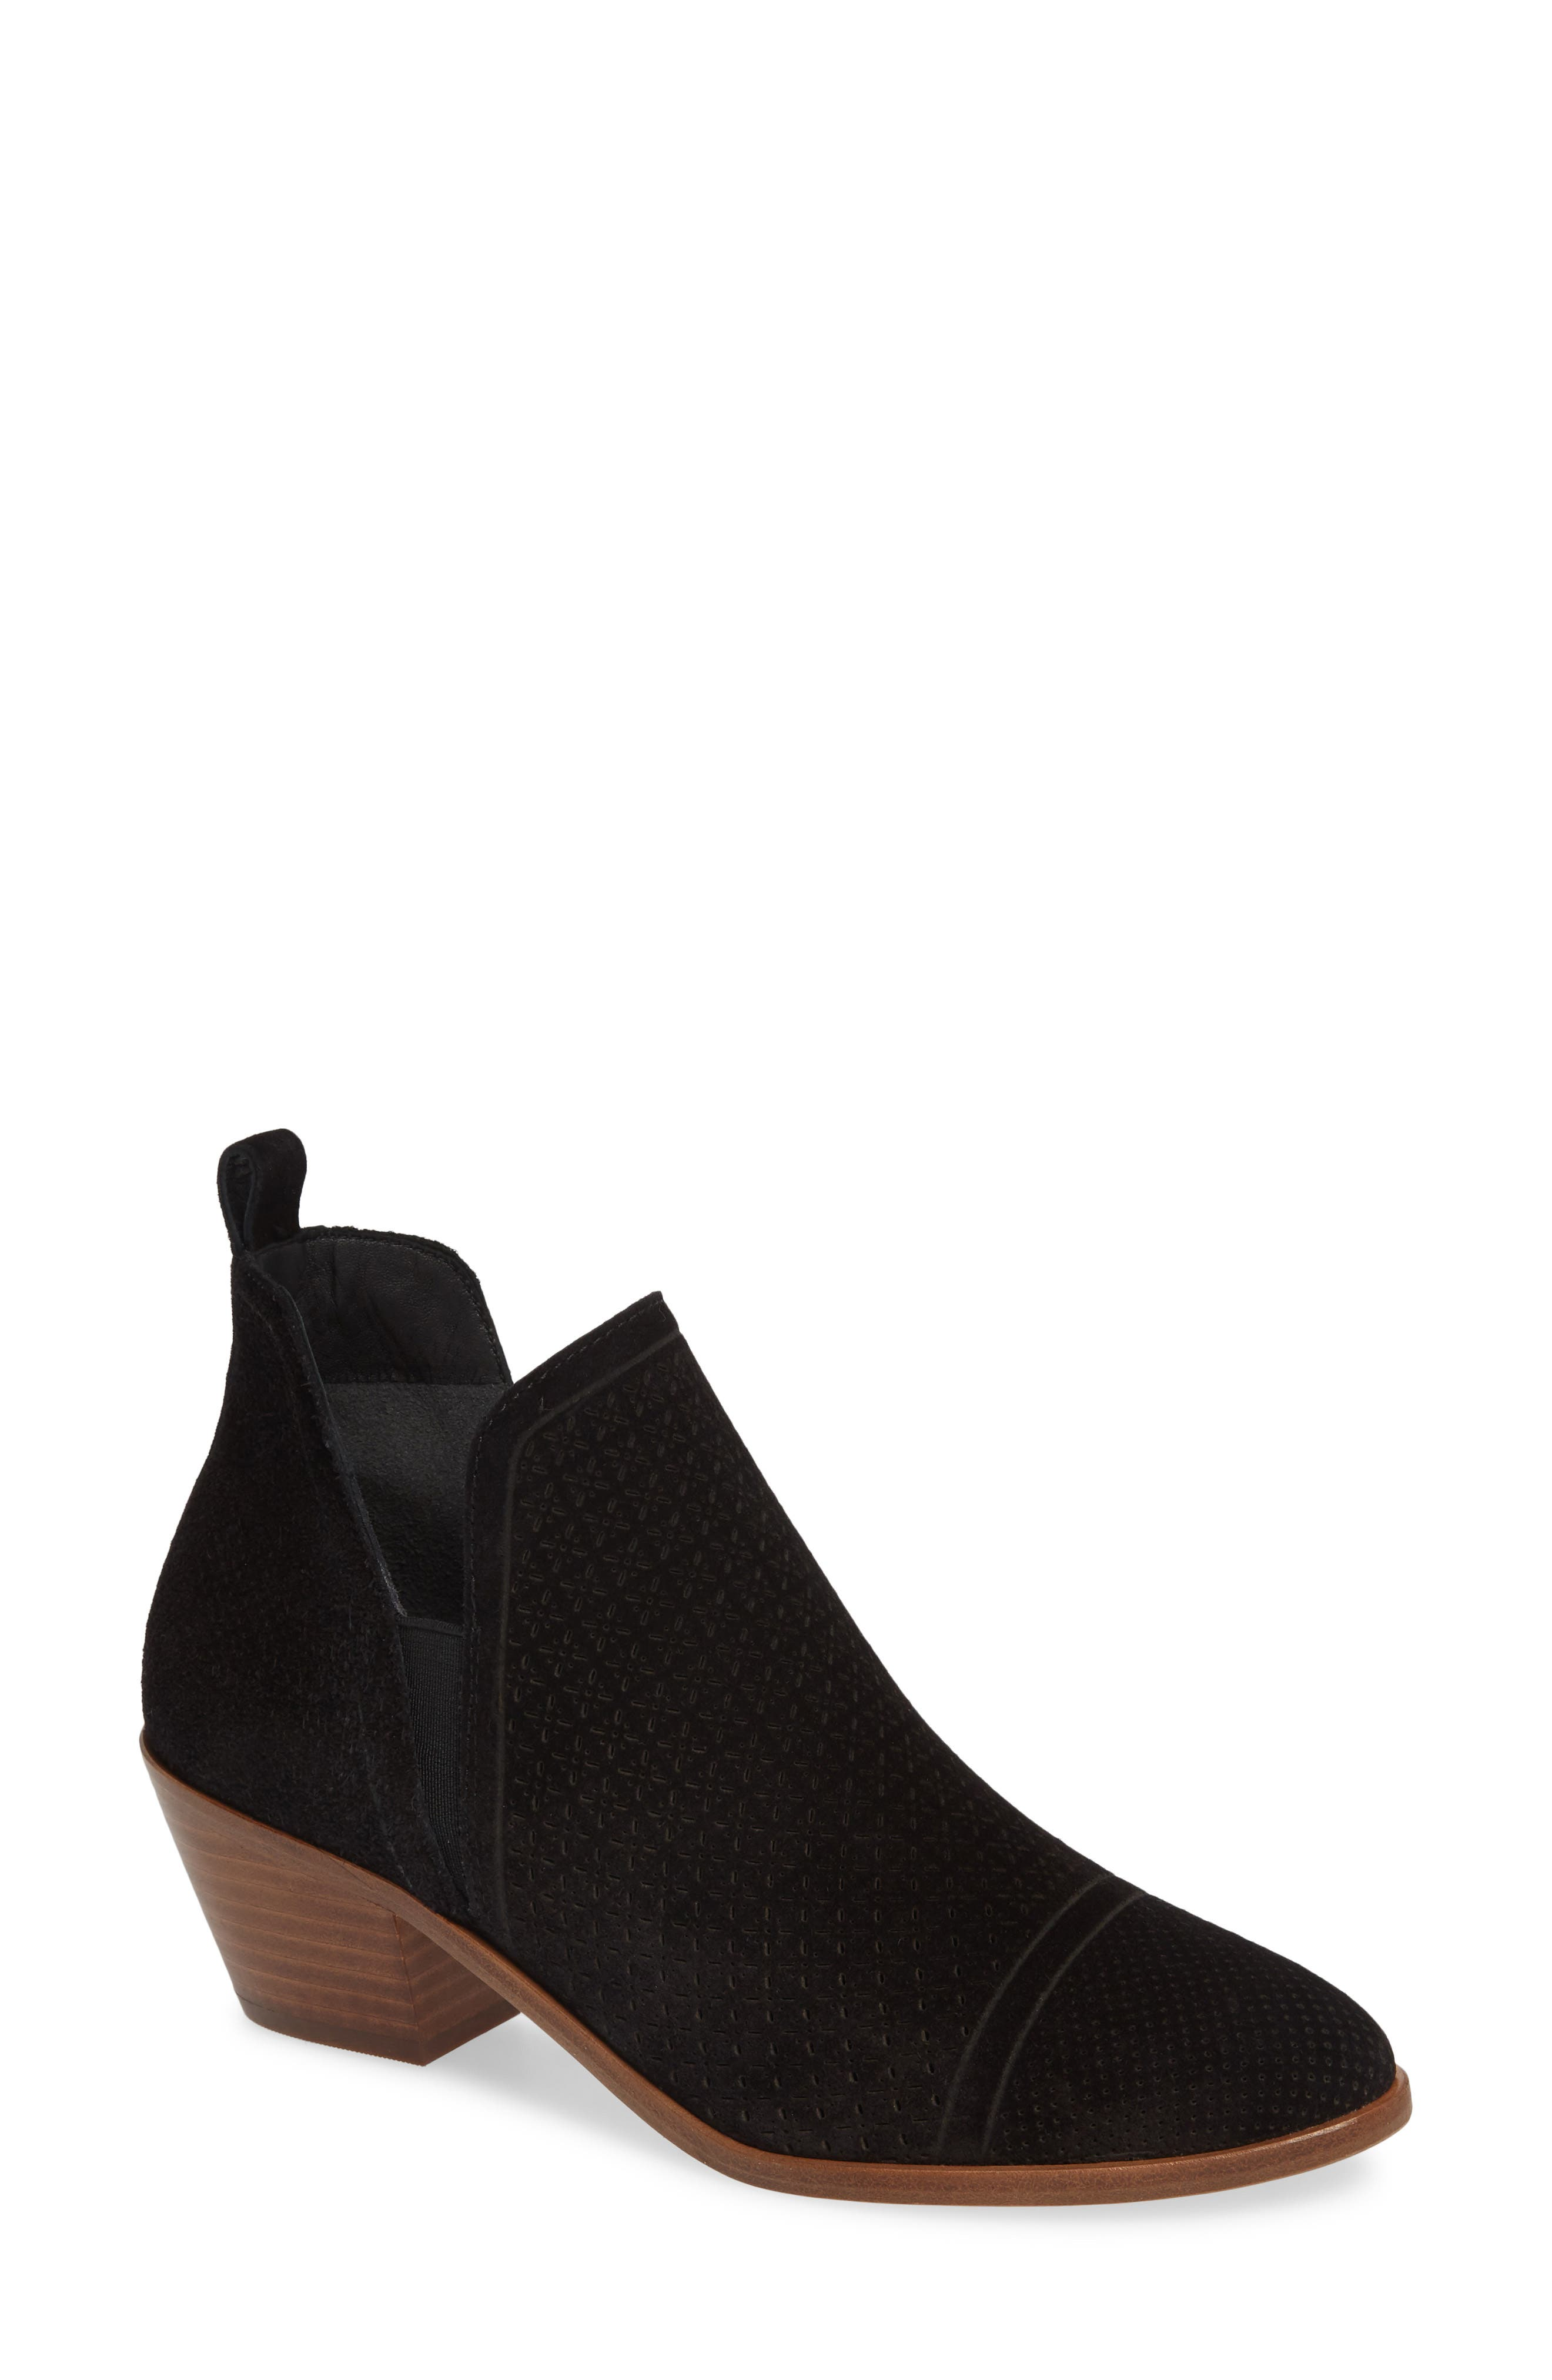 Sigerson Morrison Perforated Western Bootie EU - Black